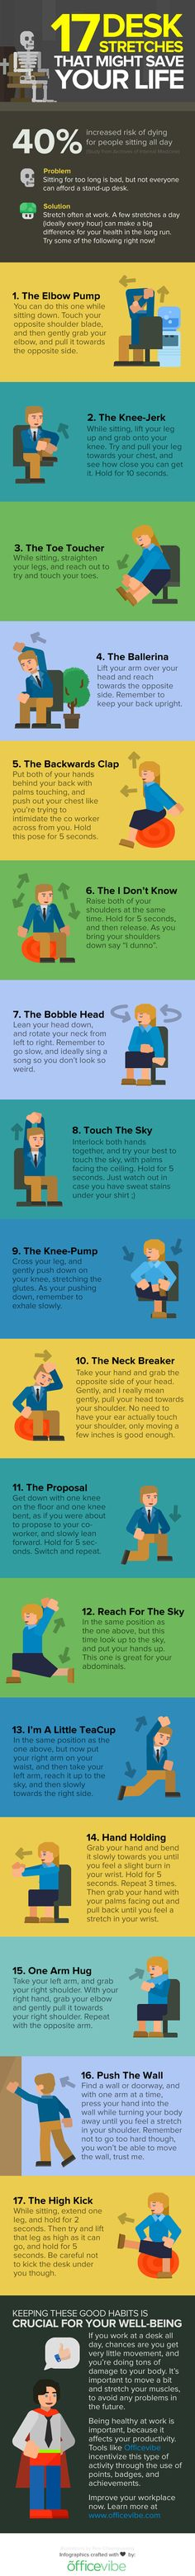 17 Simple Stretches to Do at Your Desk